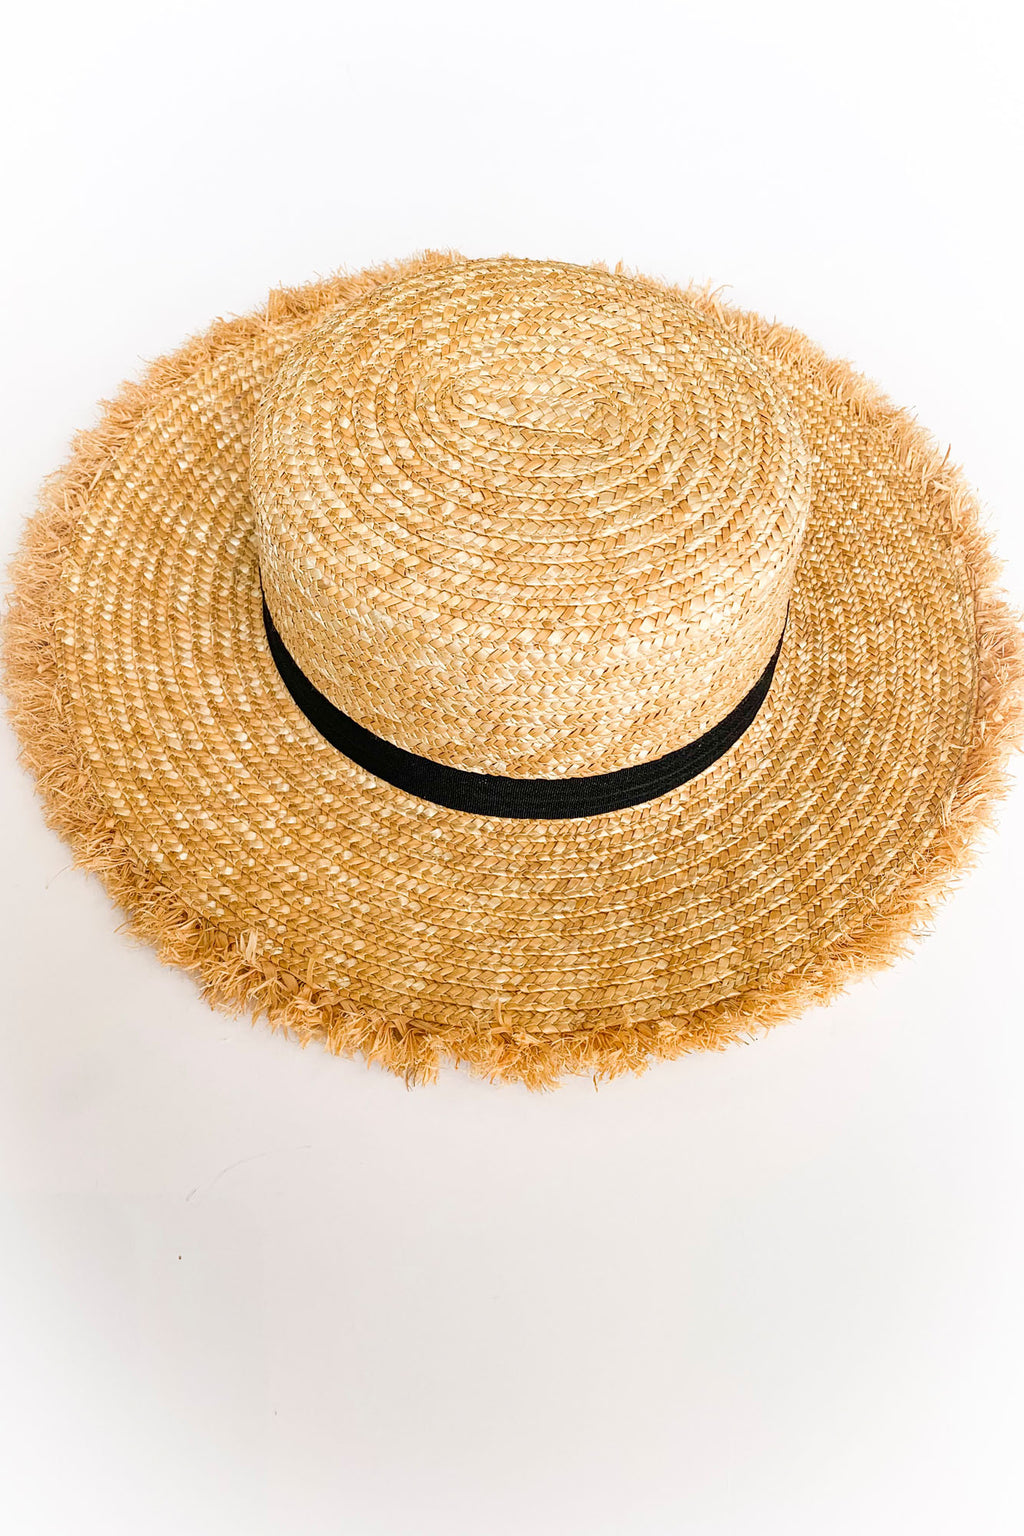 Fringe Boater Hat - Yellow Kiss Boutique